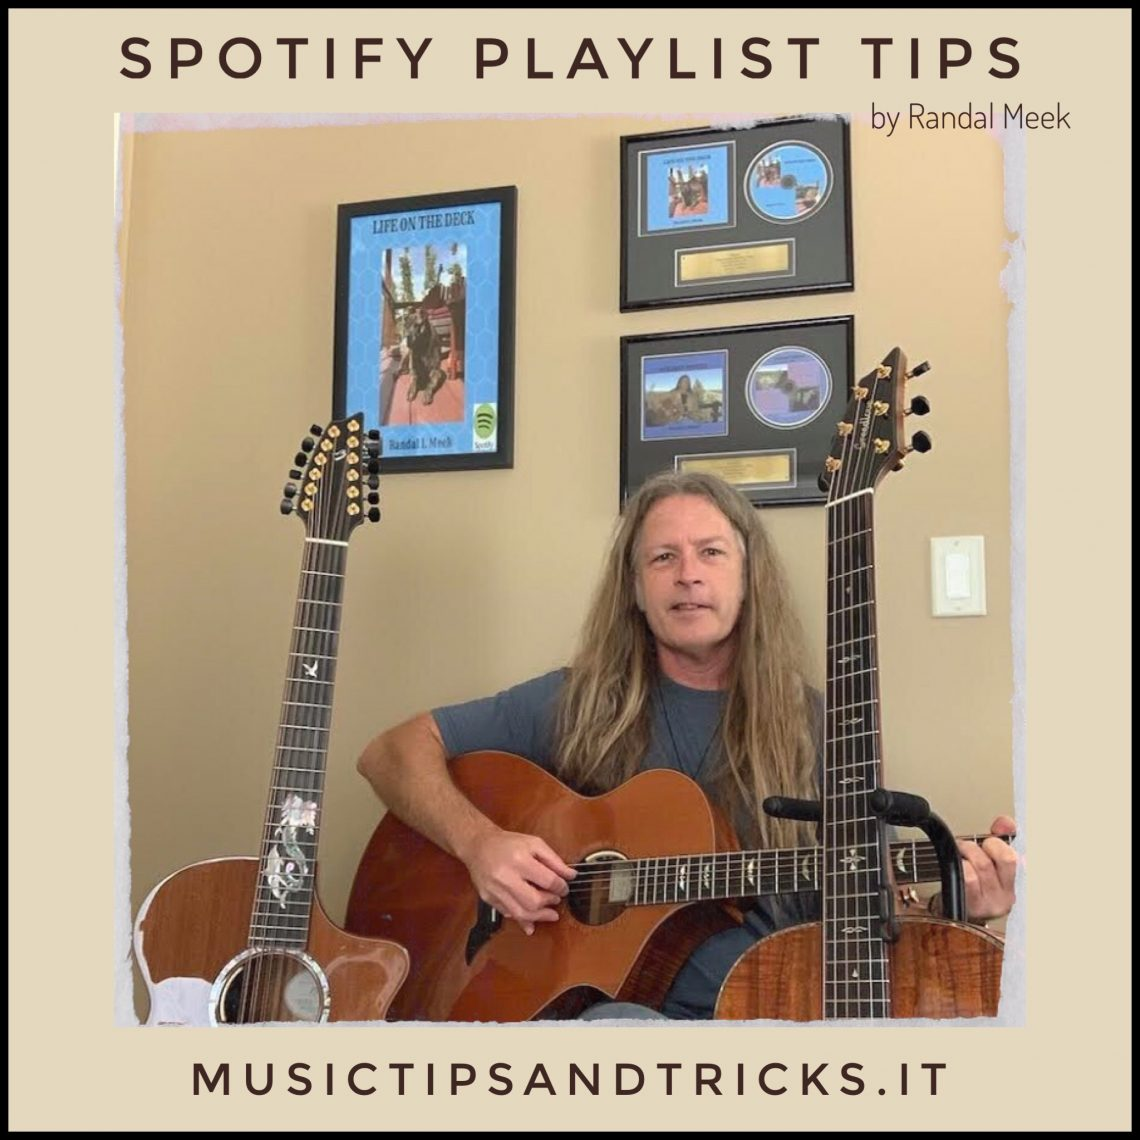 Spotify Playlist Tips by Randal Meek | Guitar Lessons Online - Tips